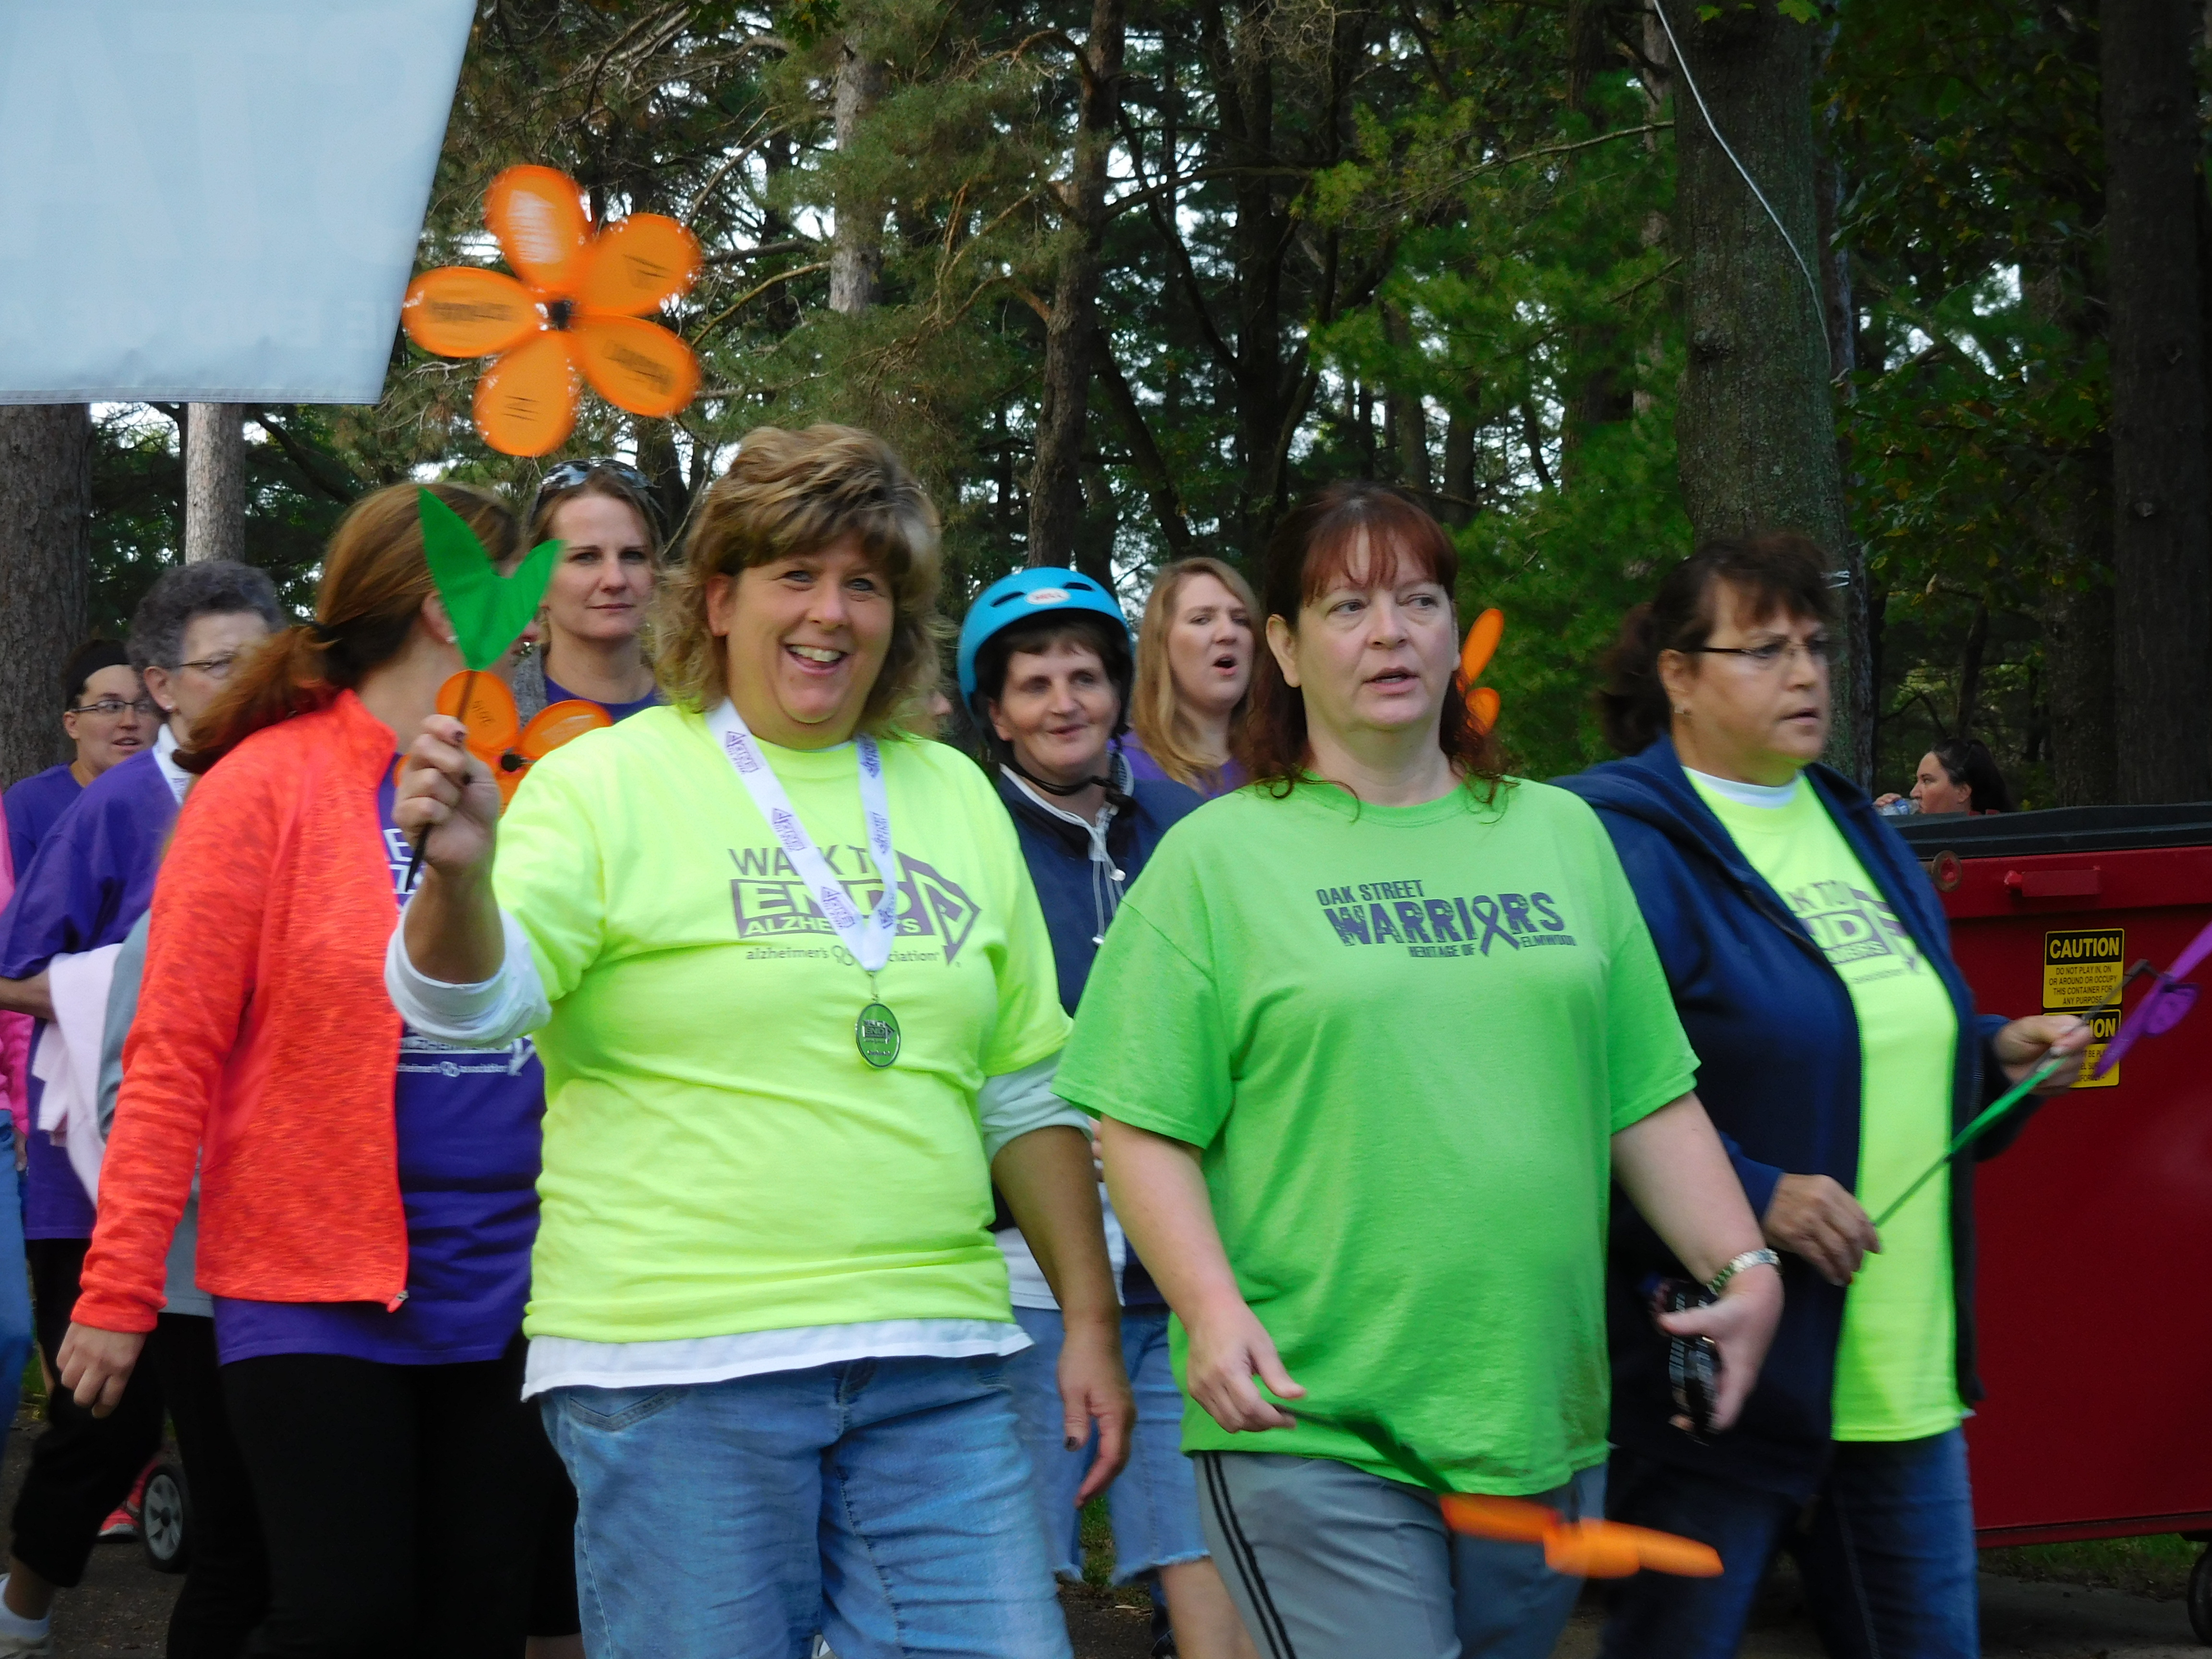 american lutheran homes walk to end alzheimer's